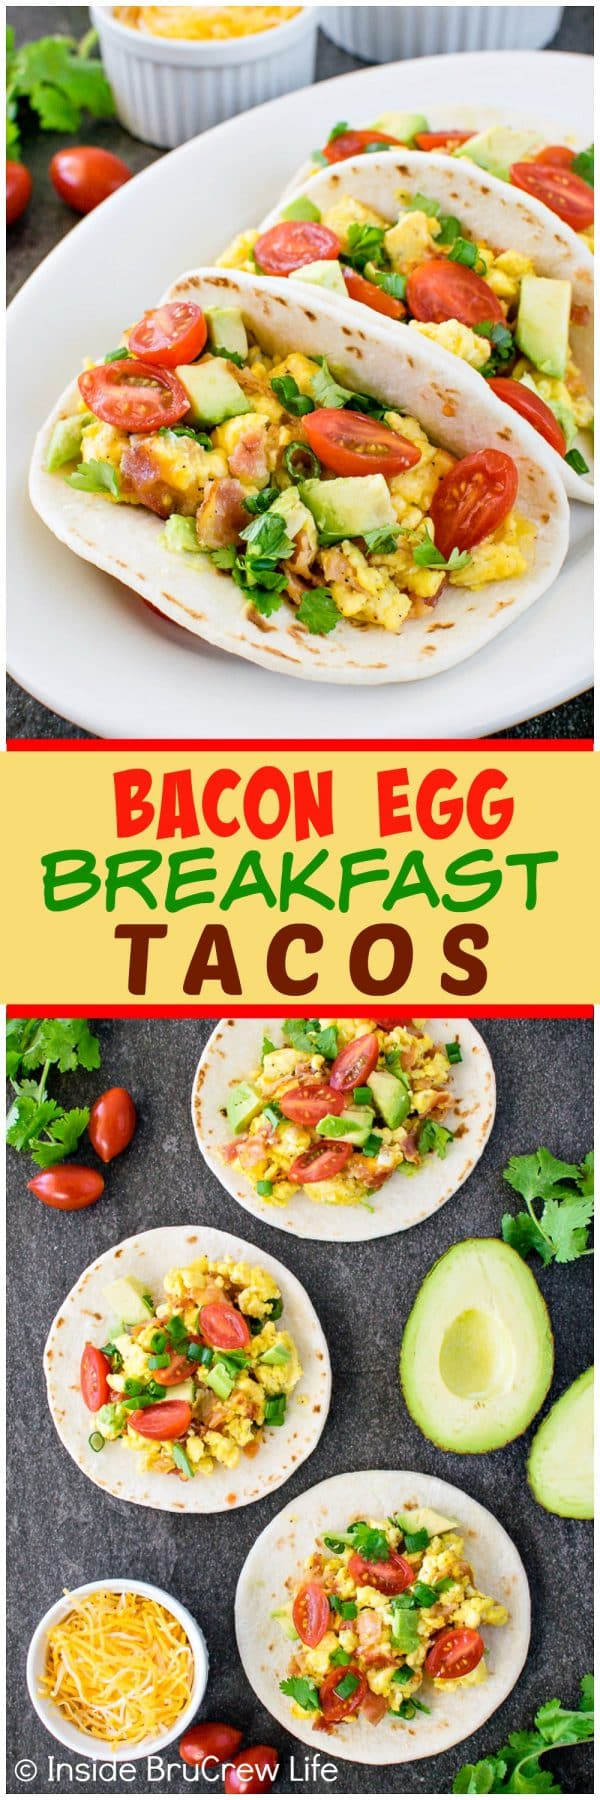 Bacon Egg Breakfast Tacos - eggs, cheese, and veggies are a great way to start the morning. Easy healthy breakfast recipe!